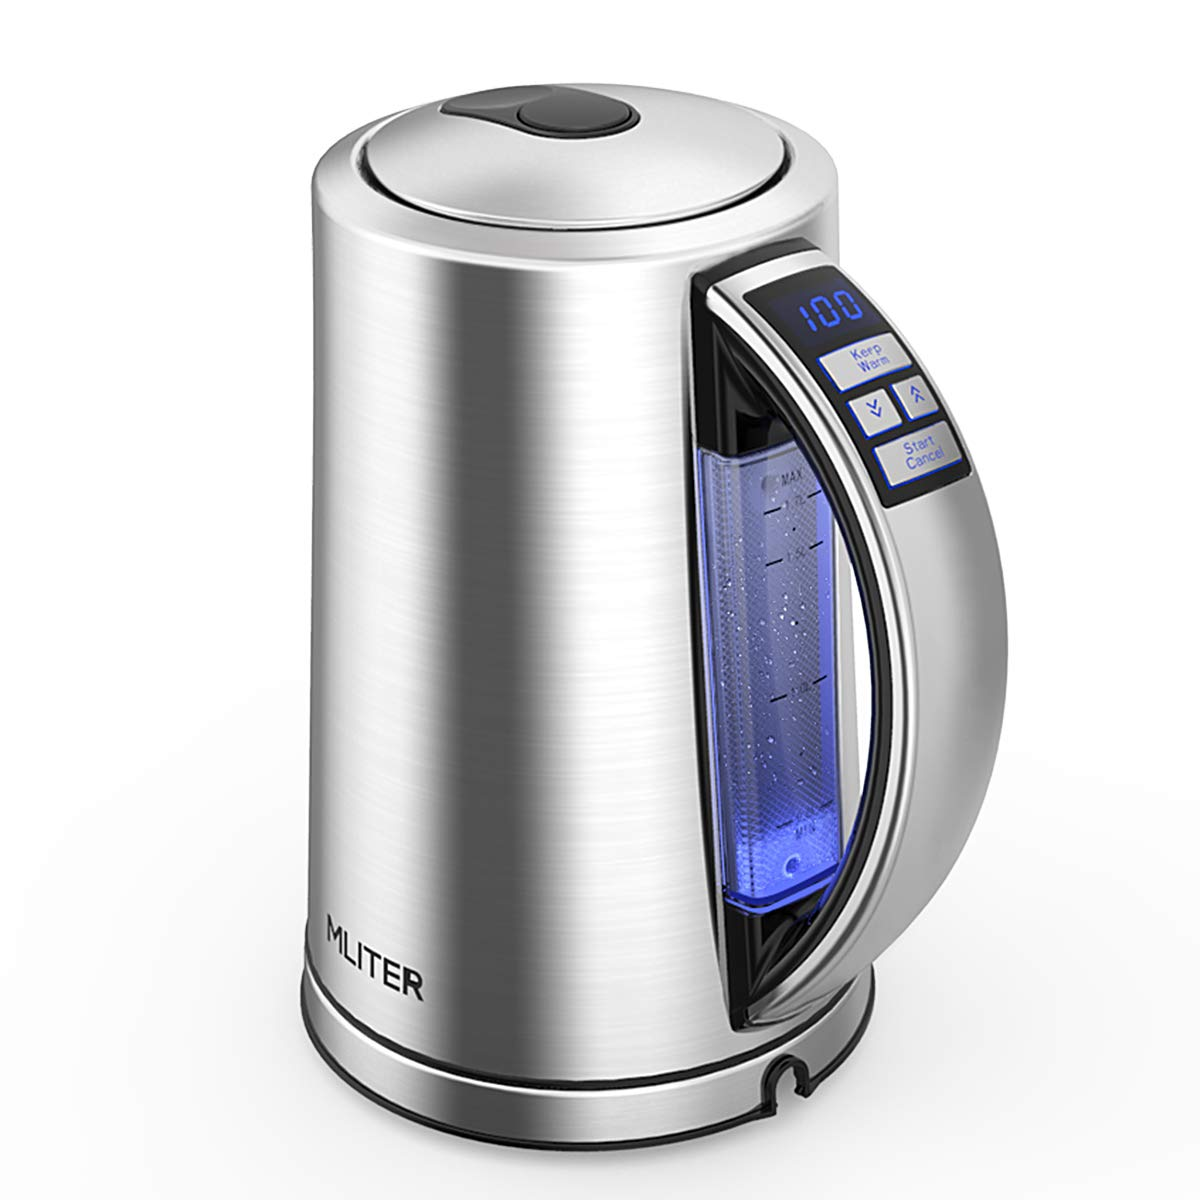 MLITER Cordless Electric Kettle Water Boiler and Warmer with Strix Temperature Control, Led Display and Color Changing Indicator for Milk, Tea and Coffee - BPA Free, 1500W / 1.7L